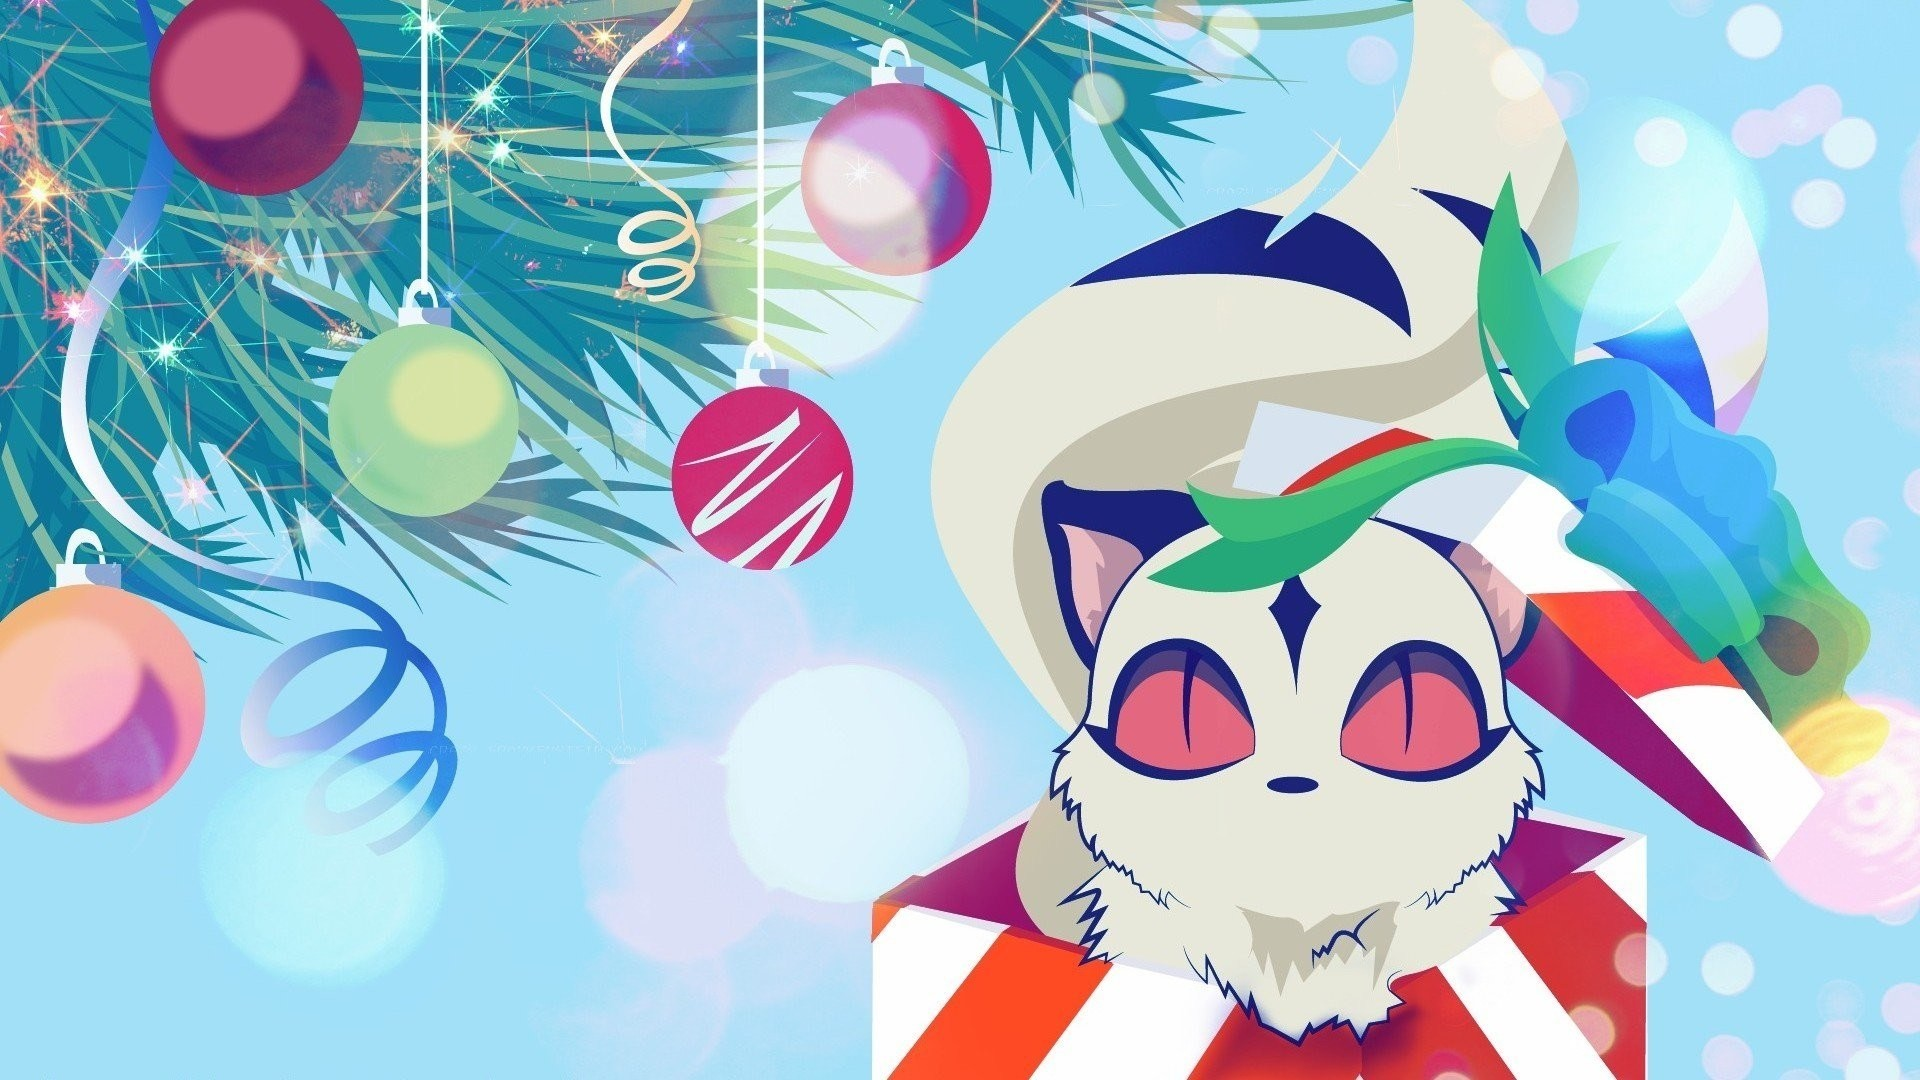 Anime Christmas Wallpaper.Anime Christmas Wallpapers 75 Background Pictures